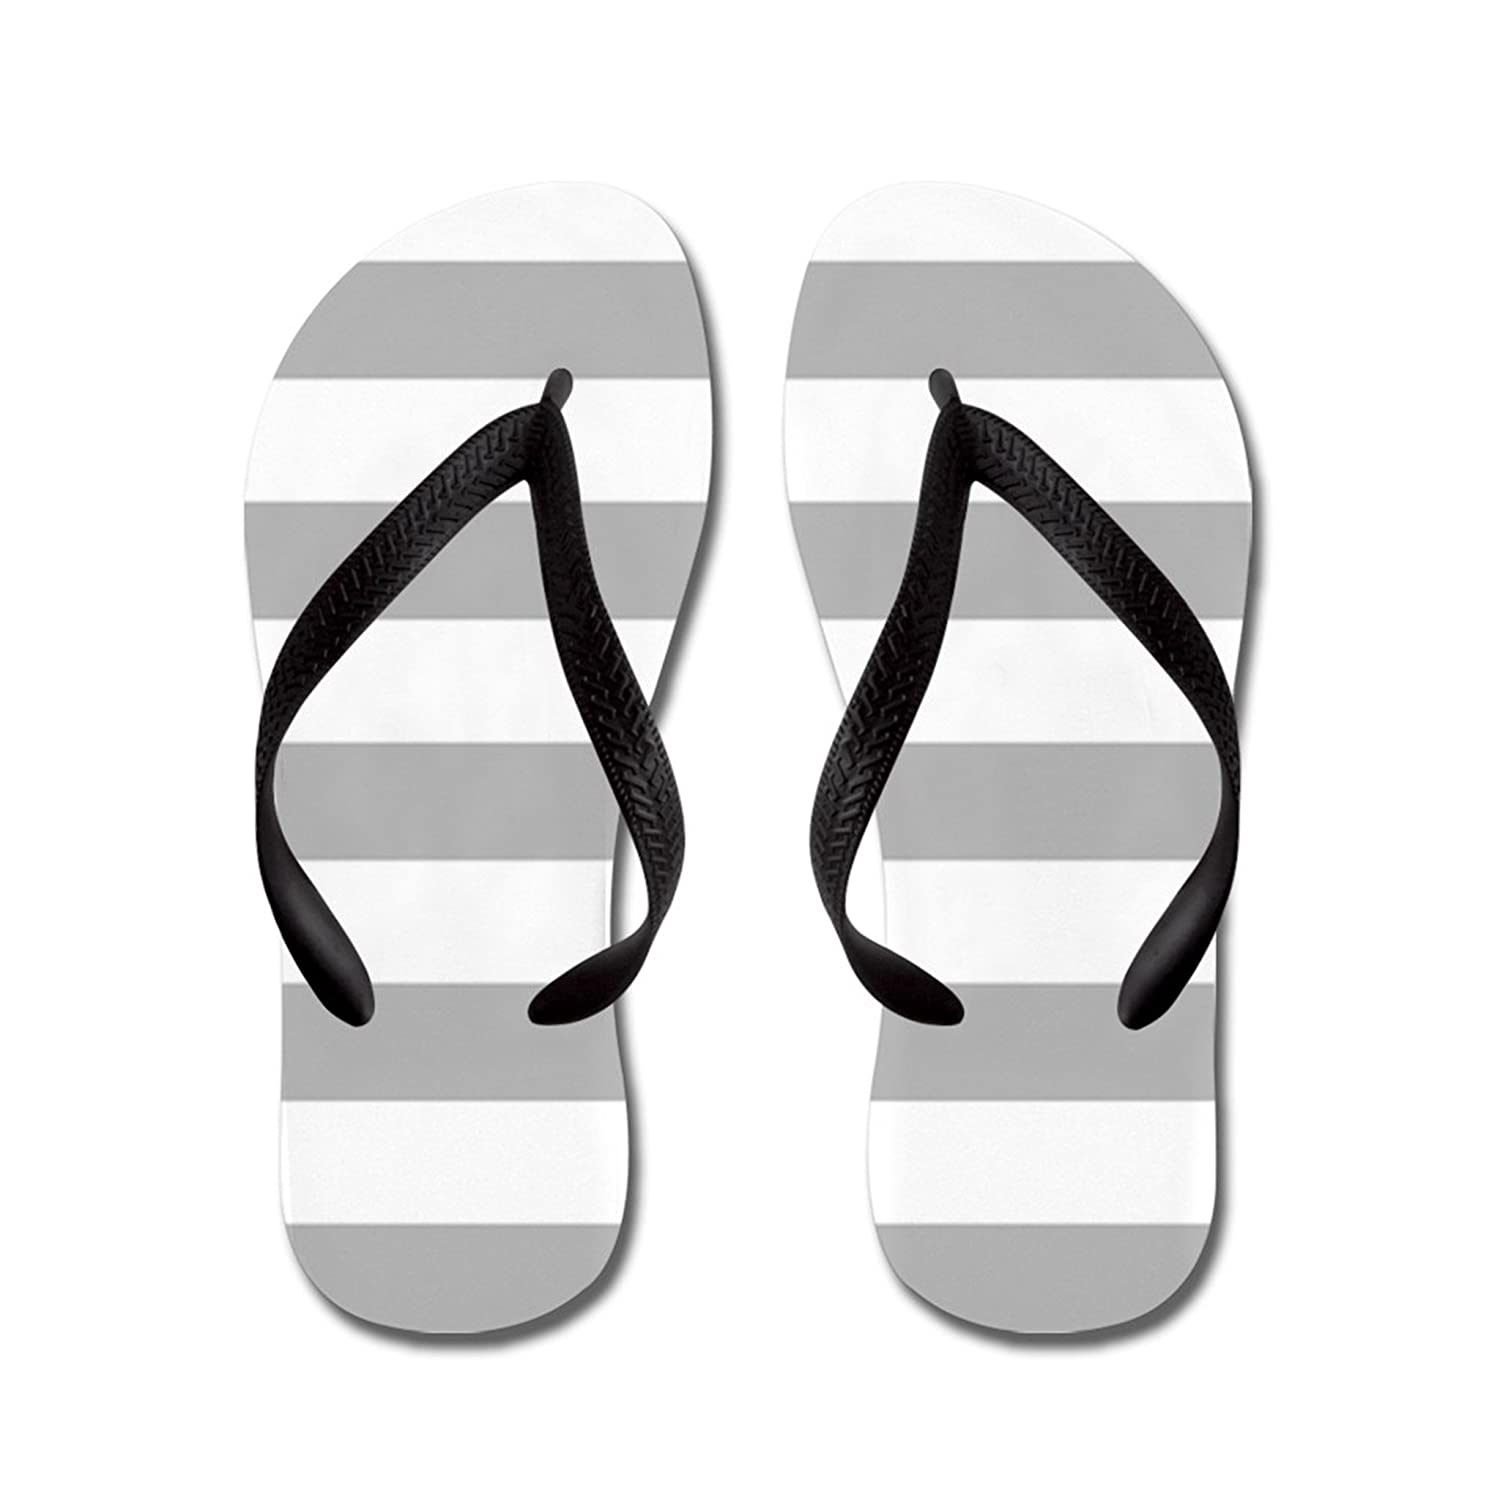 Lplpol Stripes Gray Flip Flops for Kids and Adult Unisex Beach Sandals Pool Shoes Party Slippers